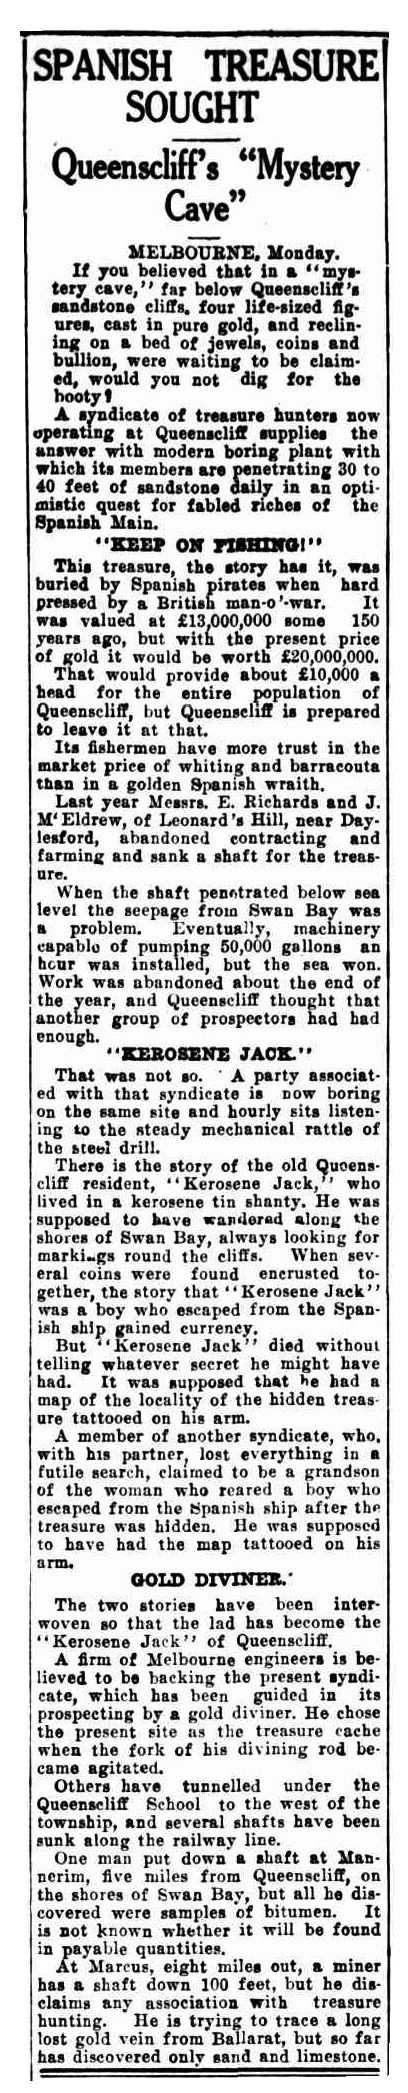 Article from the Advocate (Burnie, Tasmania) - Tuesday August 2, 1938